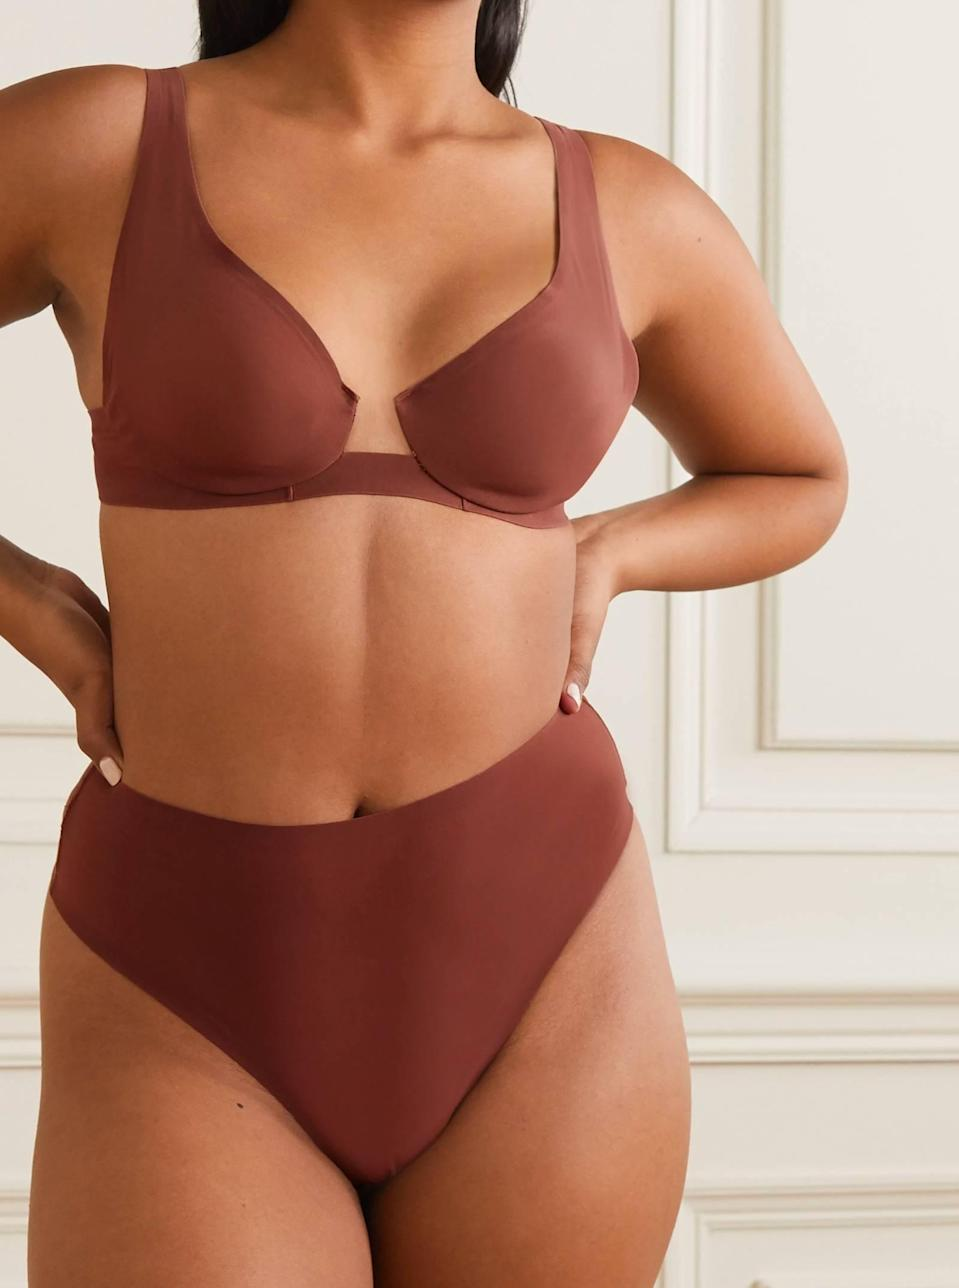 """Skims' shapewear is exactly what you need for that dreamy <a href=""""https://www.glamour.com/gallery/best-linen-dresses-to-shop-now?mbid=synd_yahoo_rss"""" rel=""""nofollow noopener"""" target=""""_blank"""" data-ylk=""""slk:linen dress"""" class=""""link rapid-noclick-resp"""">linen dress</a> hanging in your closet. This no-show thong sits high up on the hips for support and full coverage around the waist. $28, Net-a-Porter. <a href=""""https://www.net-a-porter.com/en-us/shop/product/skims/lingerie/thongs/naked-high-waisted-thong-jasper/25372685655714047"""" rel=""""nofollow noopener"""" target=""""_blank"""" data-ylk=""""slk:Get it now!"""" class=""""link rapid-noclick-resp"""">Get it now!</a>"""